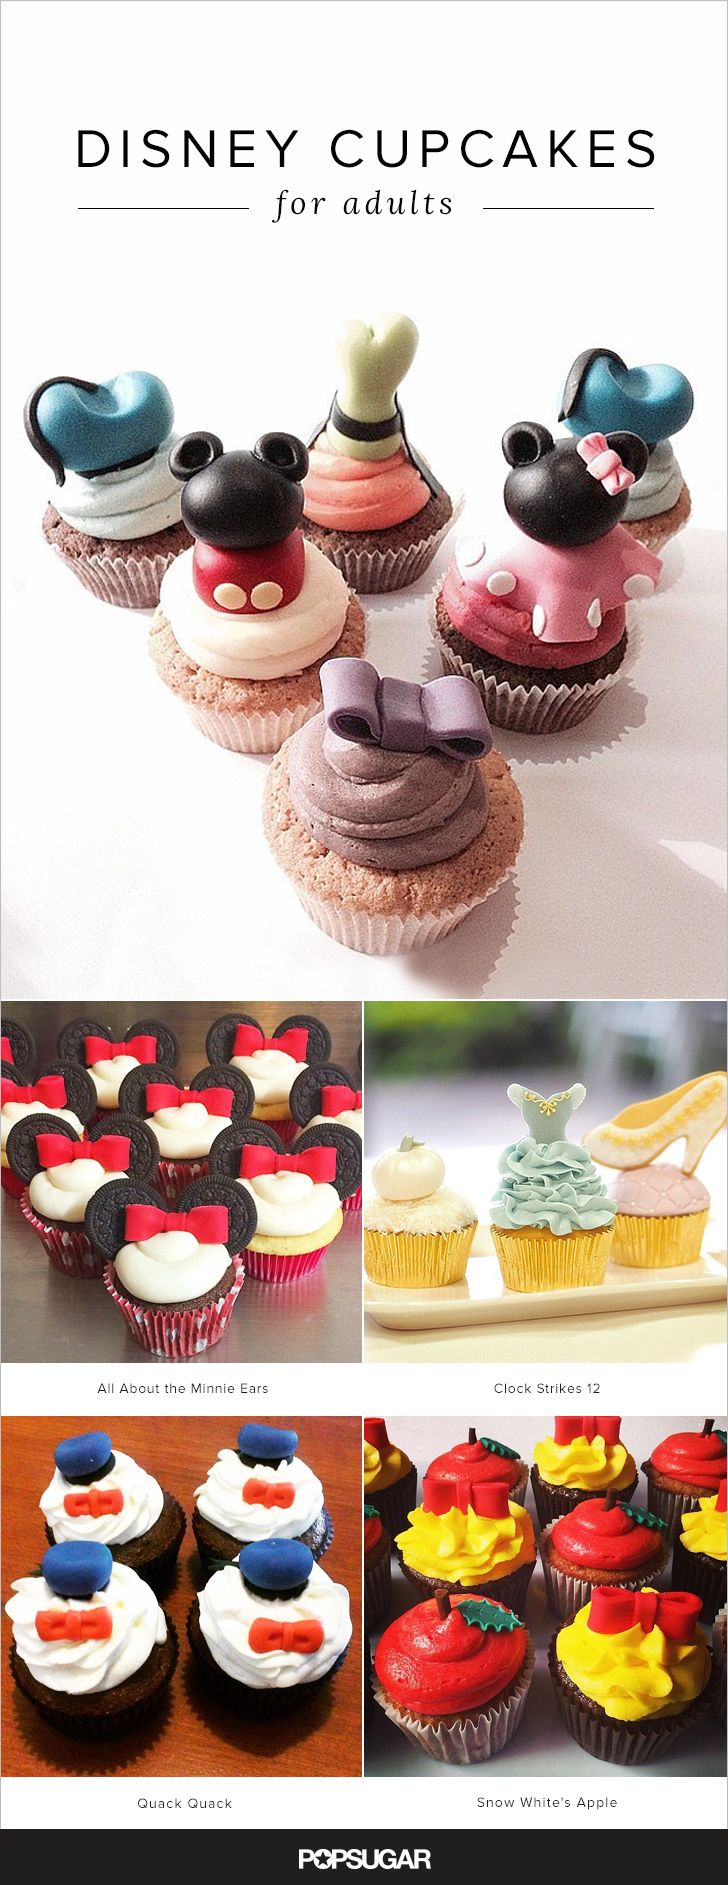 If you checked out these stunning Disney wedding cakes, then you already know you can embrace your Disney obsession in a classy, adult way. Luckily, we found another way you can celebrate your love of the classics — this time with cupcakes! Whether you hold Cinderella or Frozen near and dear to your heart, you'll find that the film-inspired sweets ahead are most definitely adult approved.